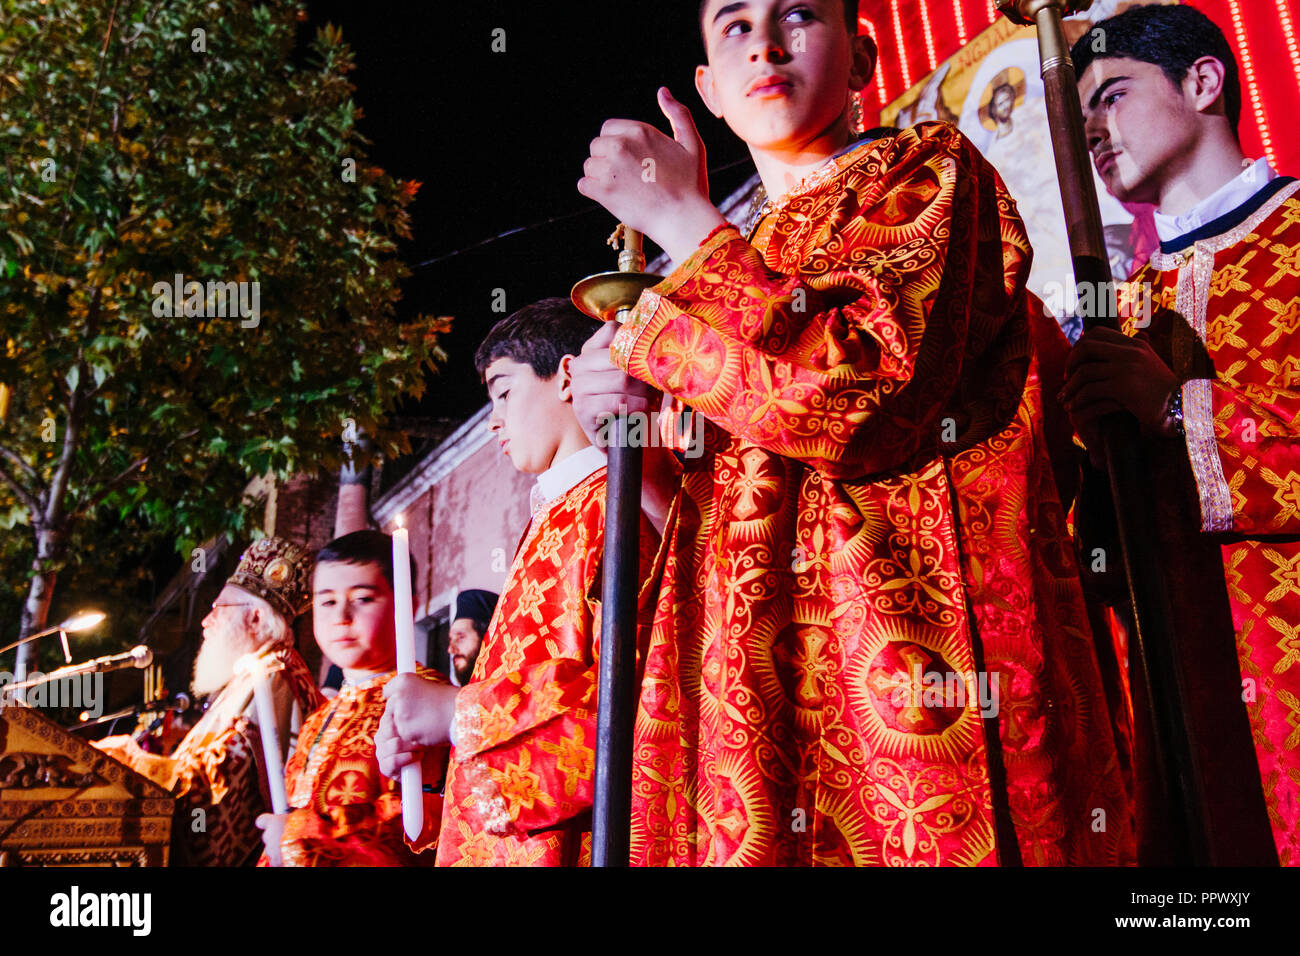 Tirana, Albania : Acolytes and priest during the celebration of the Orthodox Easter in the streets of Tirana. - Stock Image